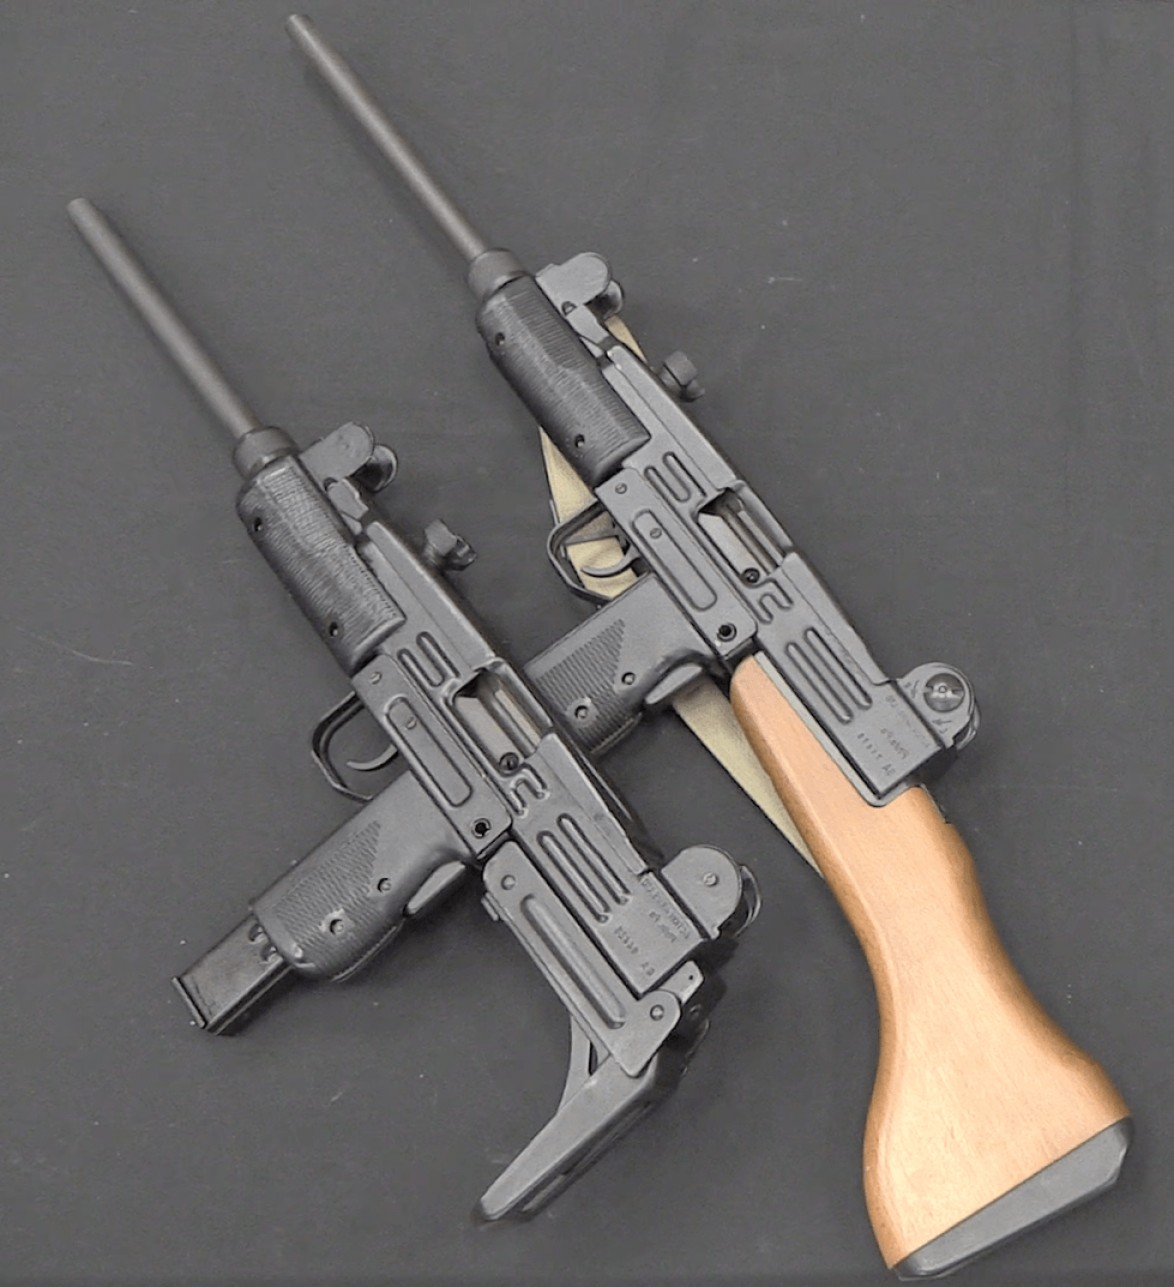 Vector Arms Uzi Manual: Action Arms Semiauto Uzi Carbines Model A And Model B